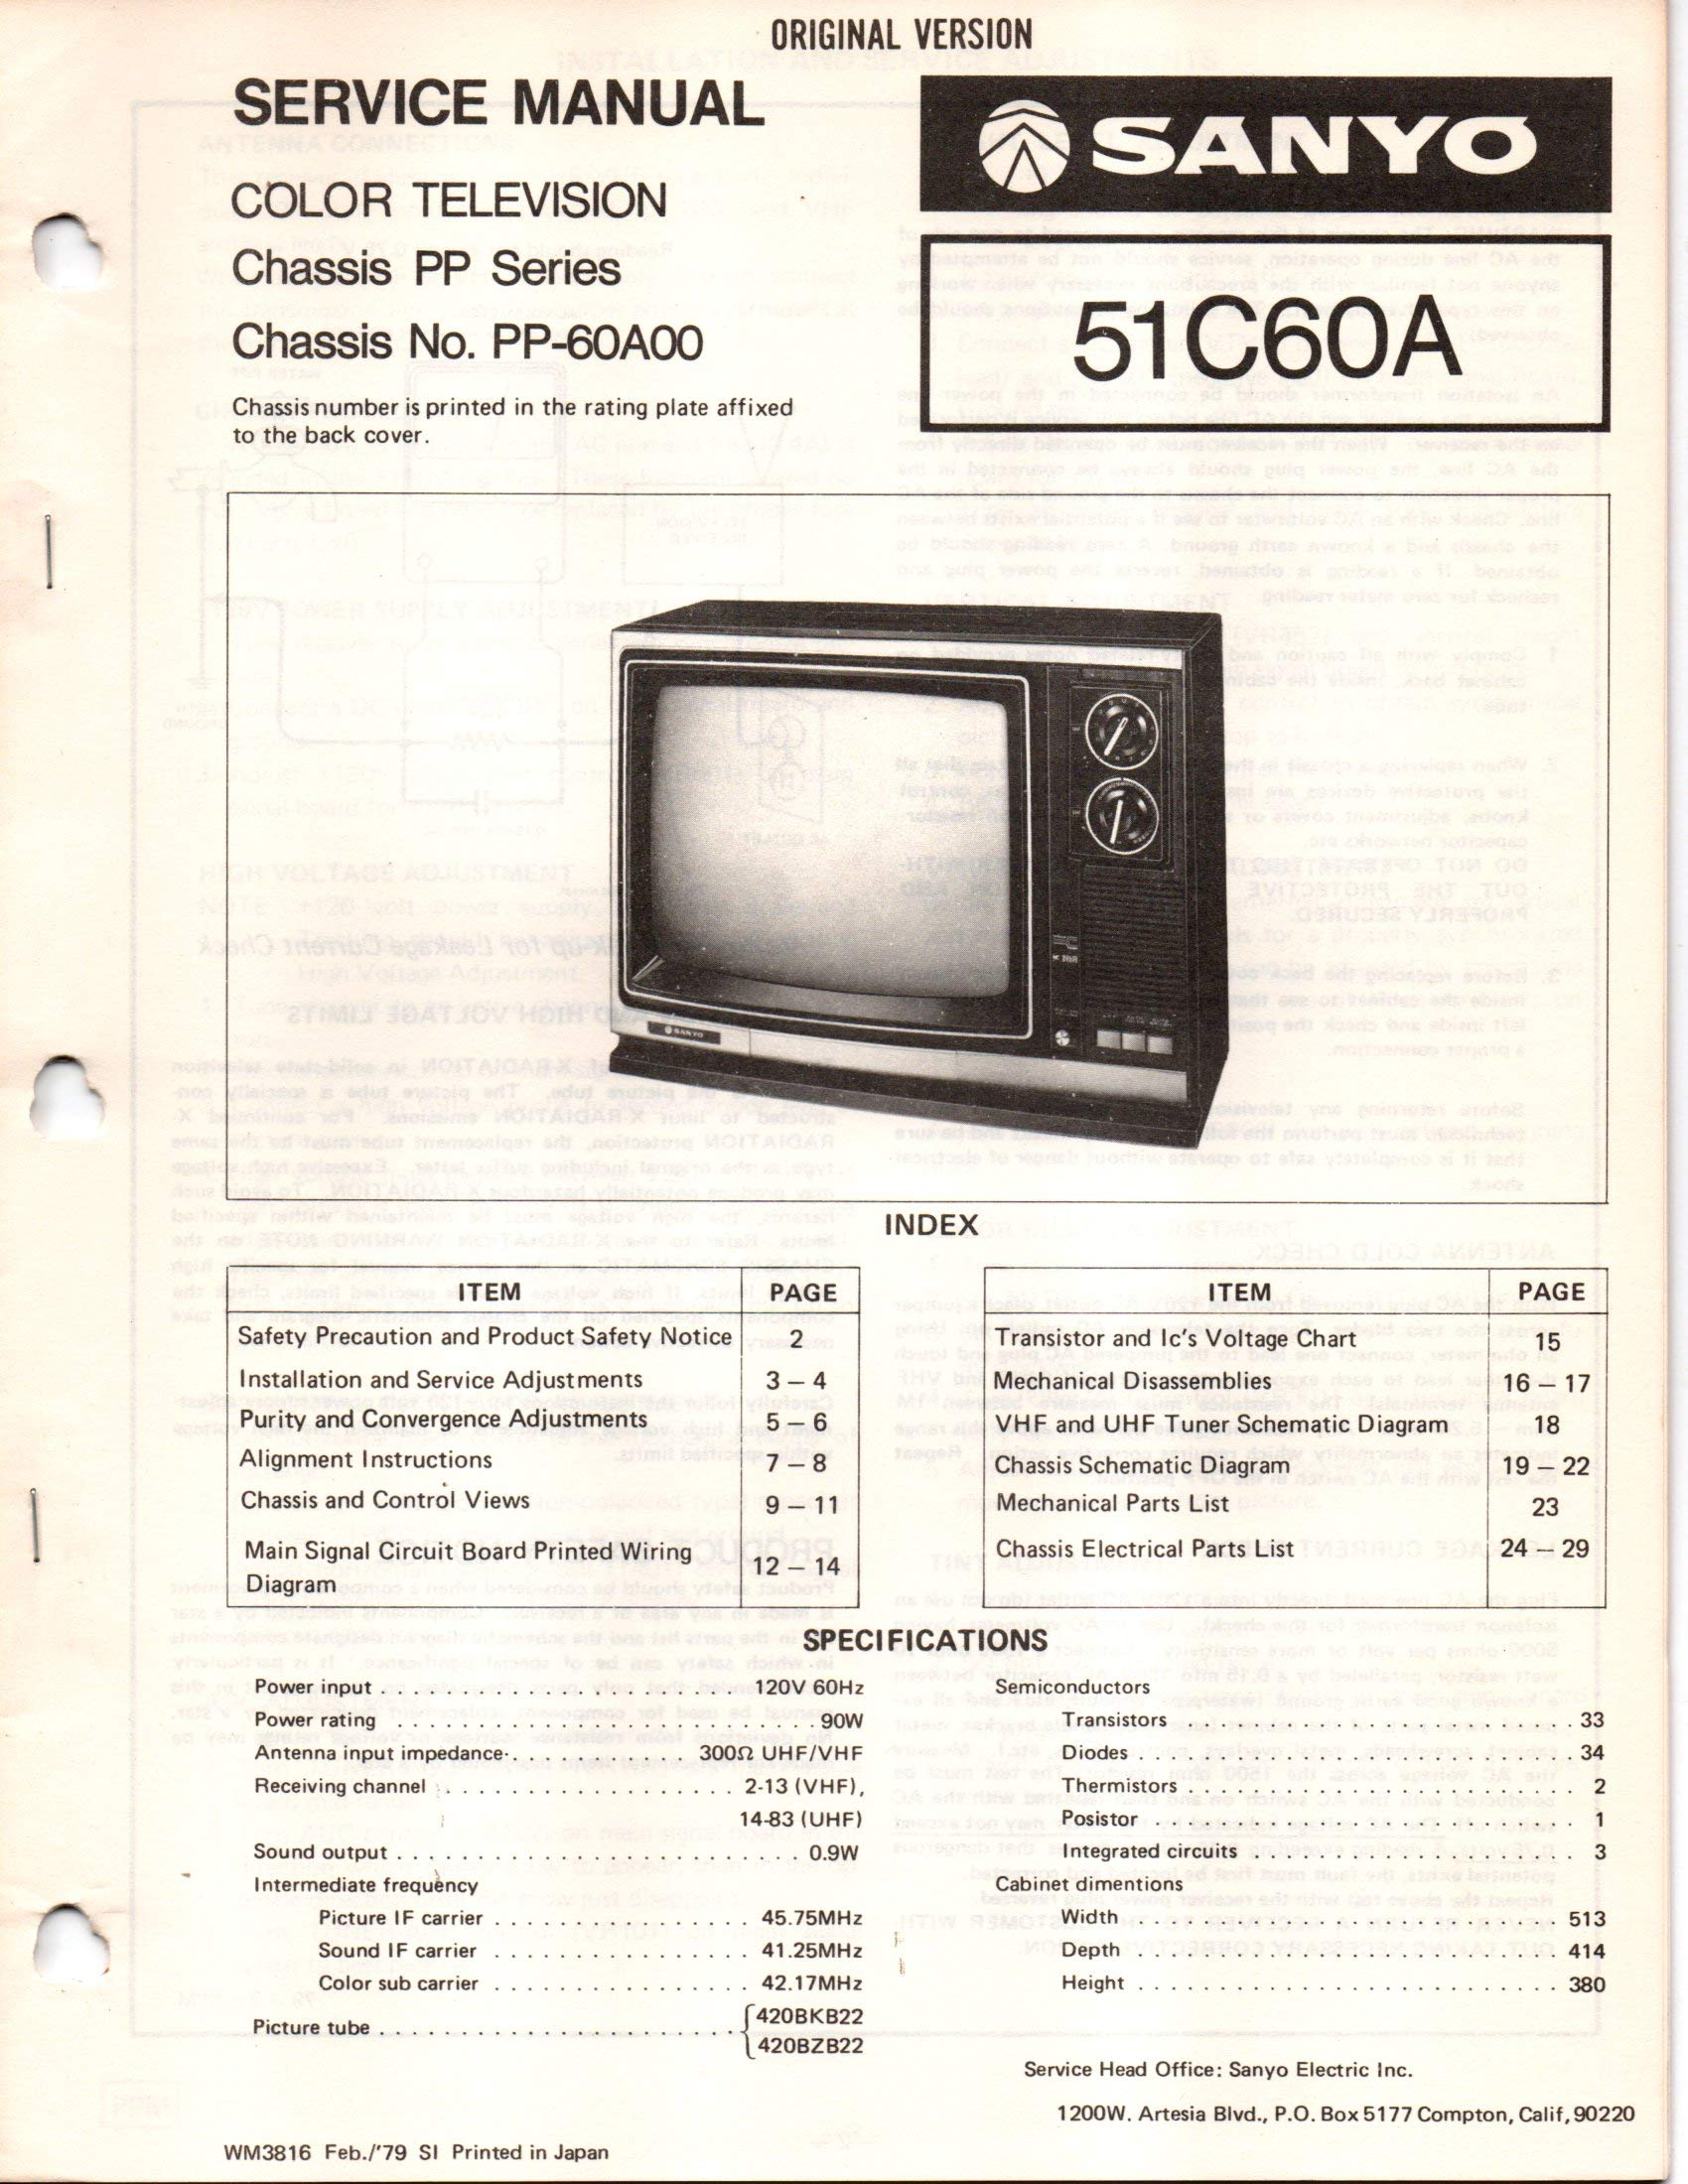 Service Manual for Sanyo 51C60A, 51C60N Color Television TV